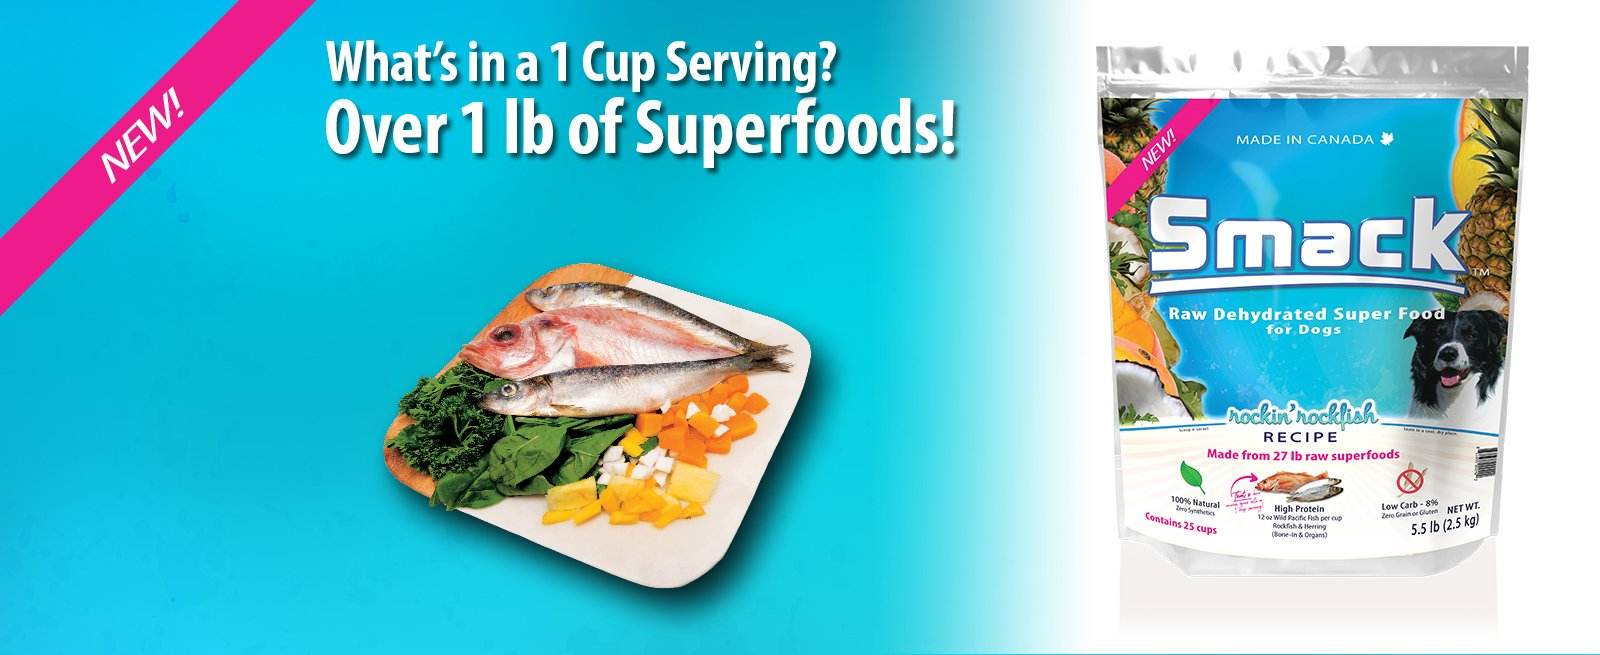 What's in a 1 Cup Serving? Over 1 lb of Superfoods!